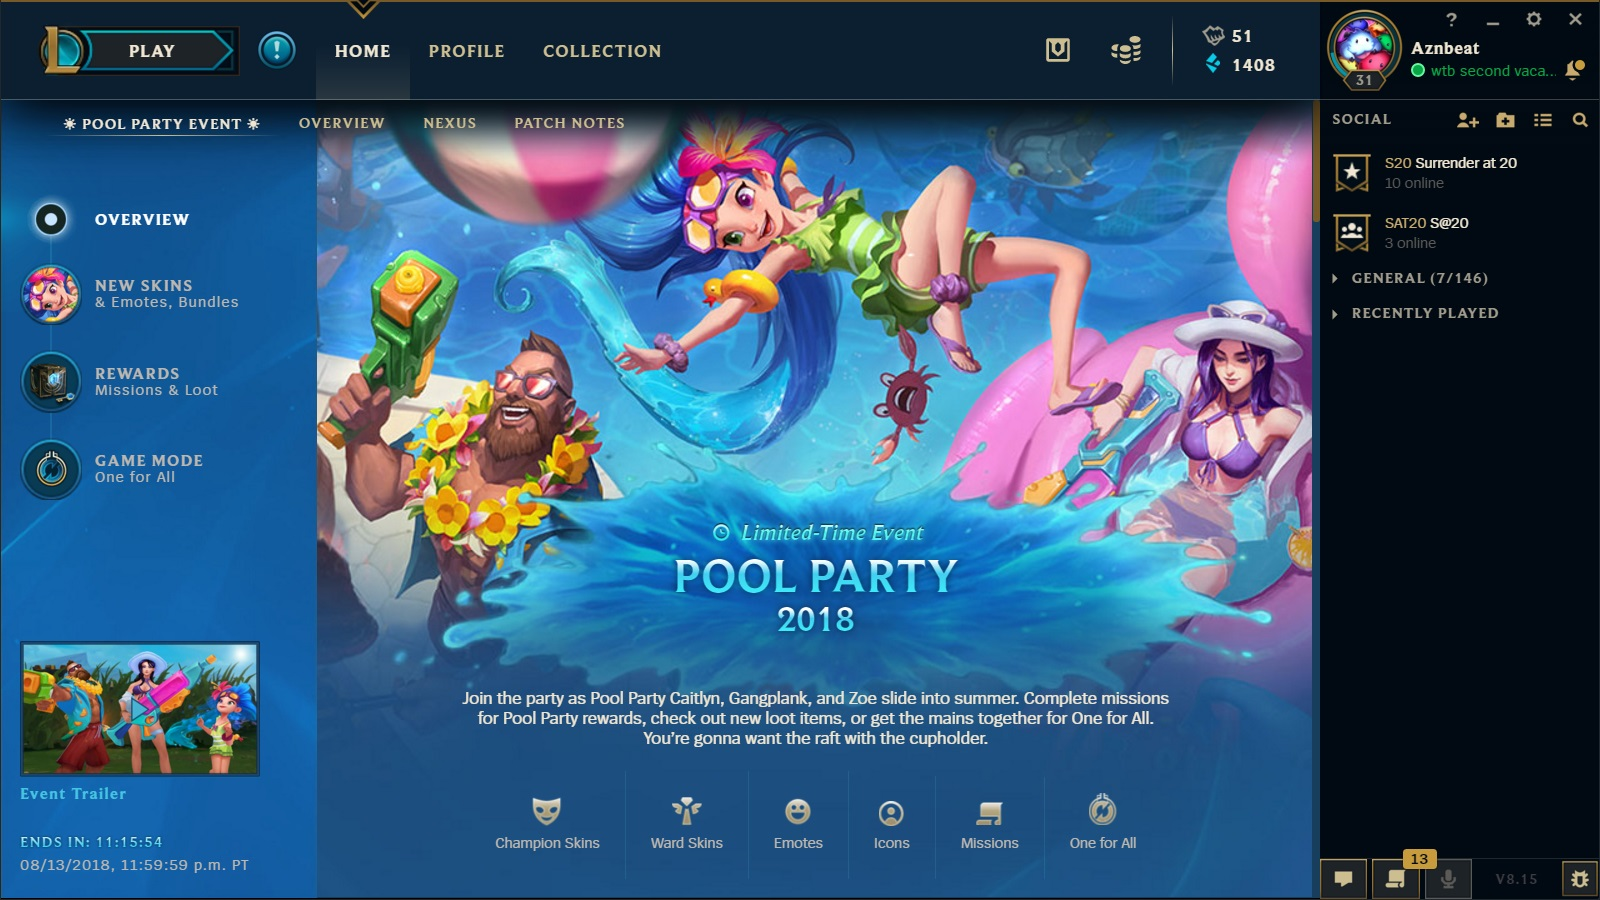 Surrender at 20: Pool Party 2018 - Pool Party Caitlyn, Gangplank and